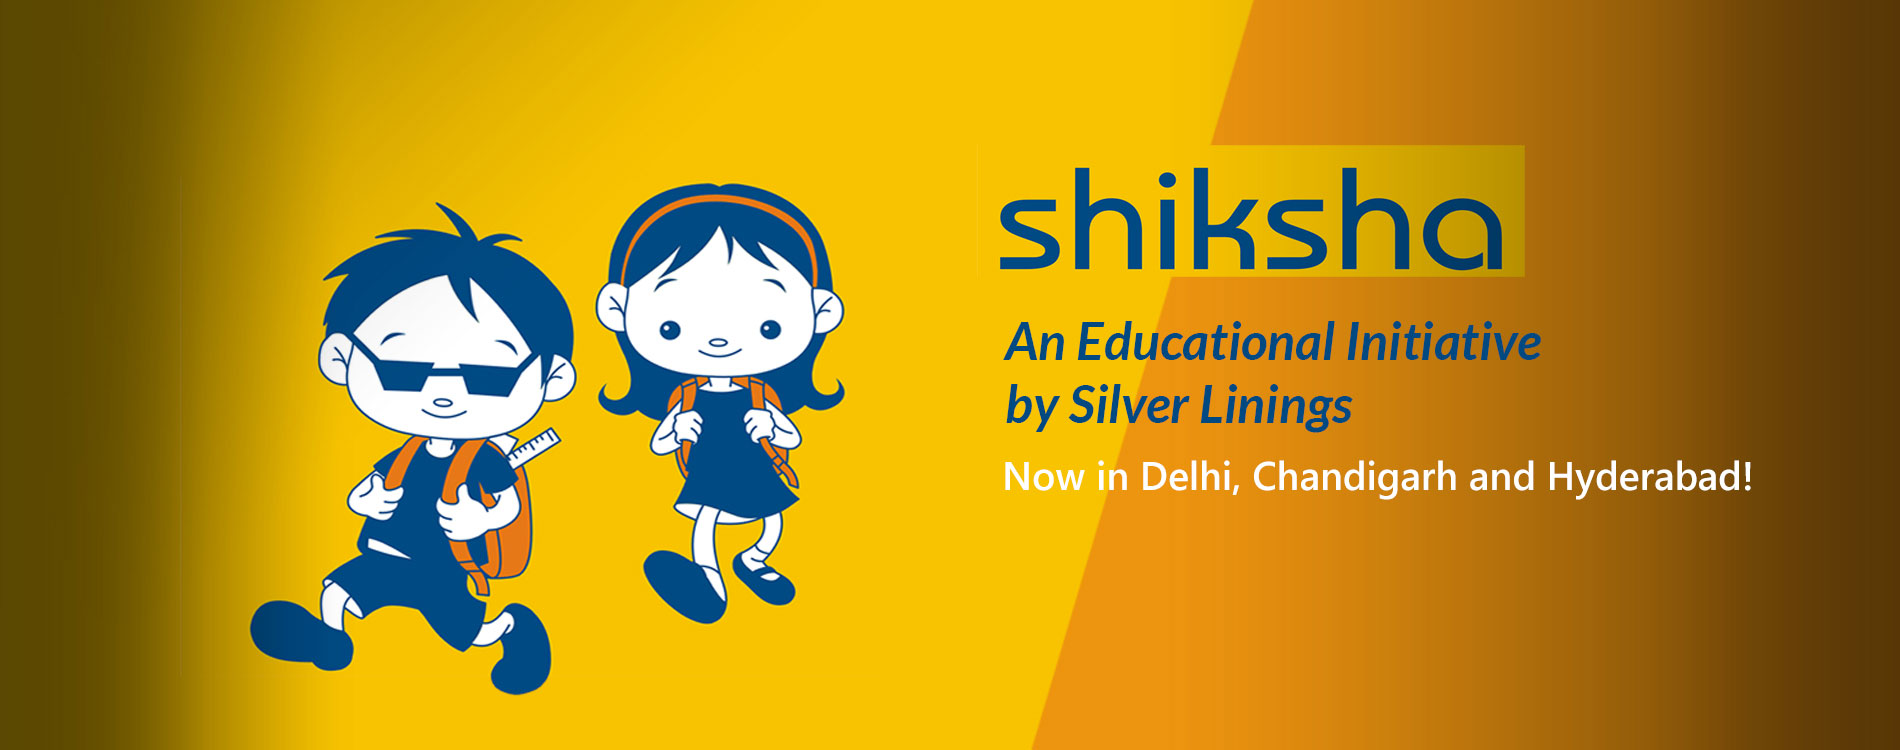 Shiksha- An educational initiative by Silver Linings